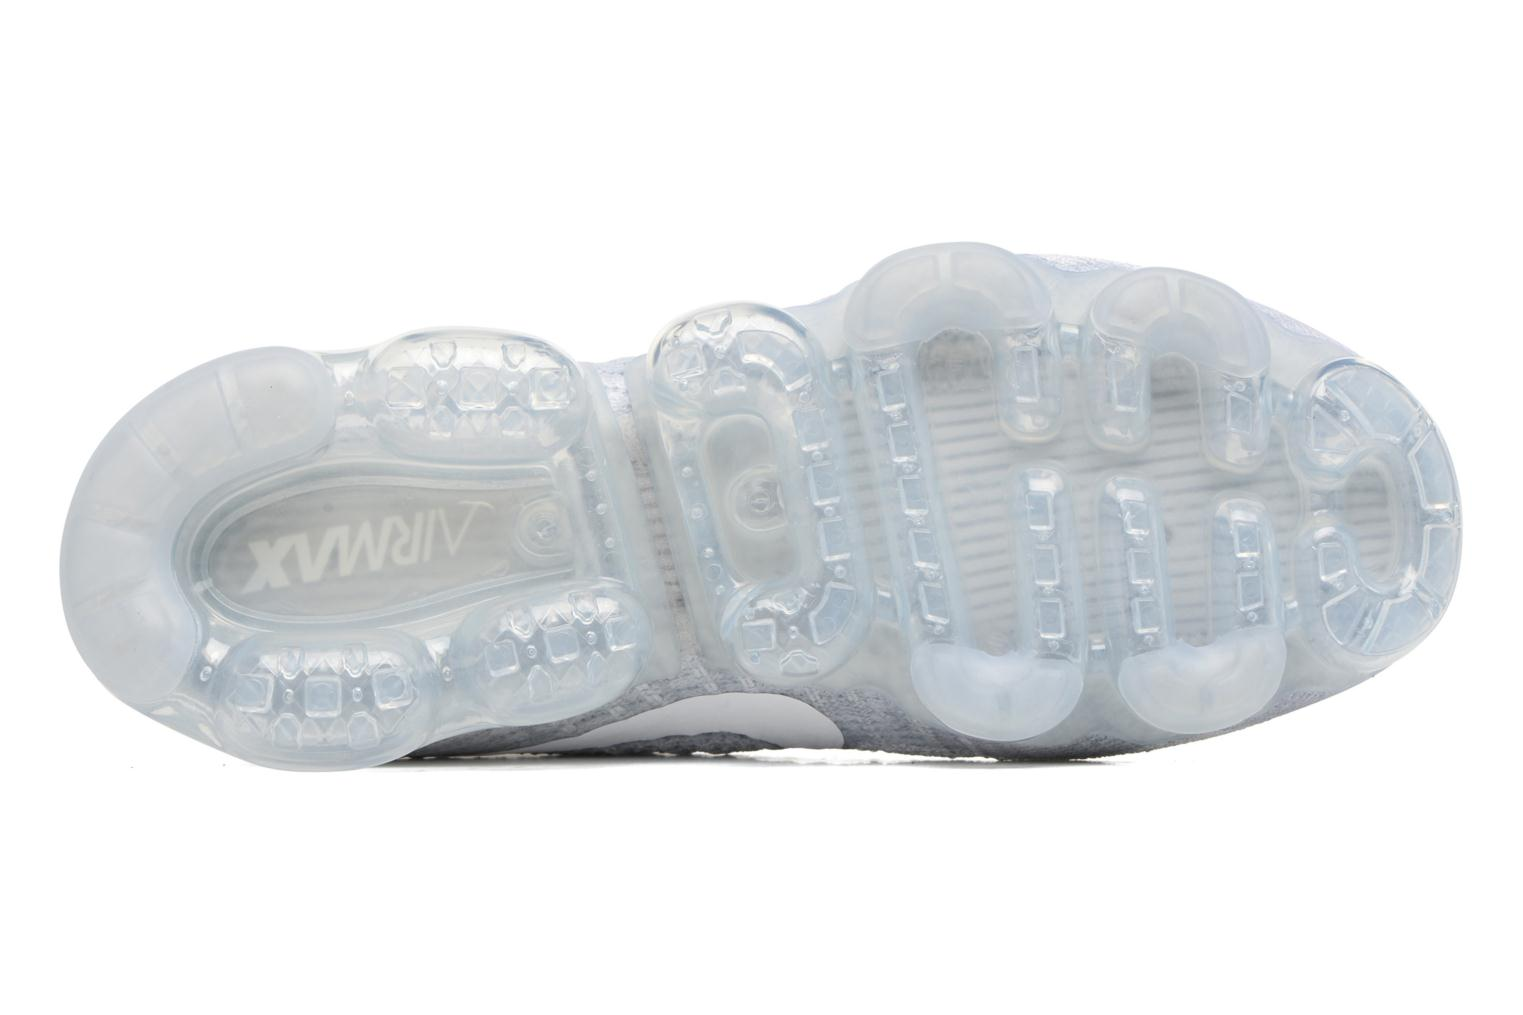 Nike Air Vapormax Flyknit Pure Platinum/White-Wolf Grey